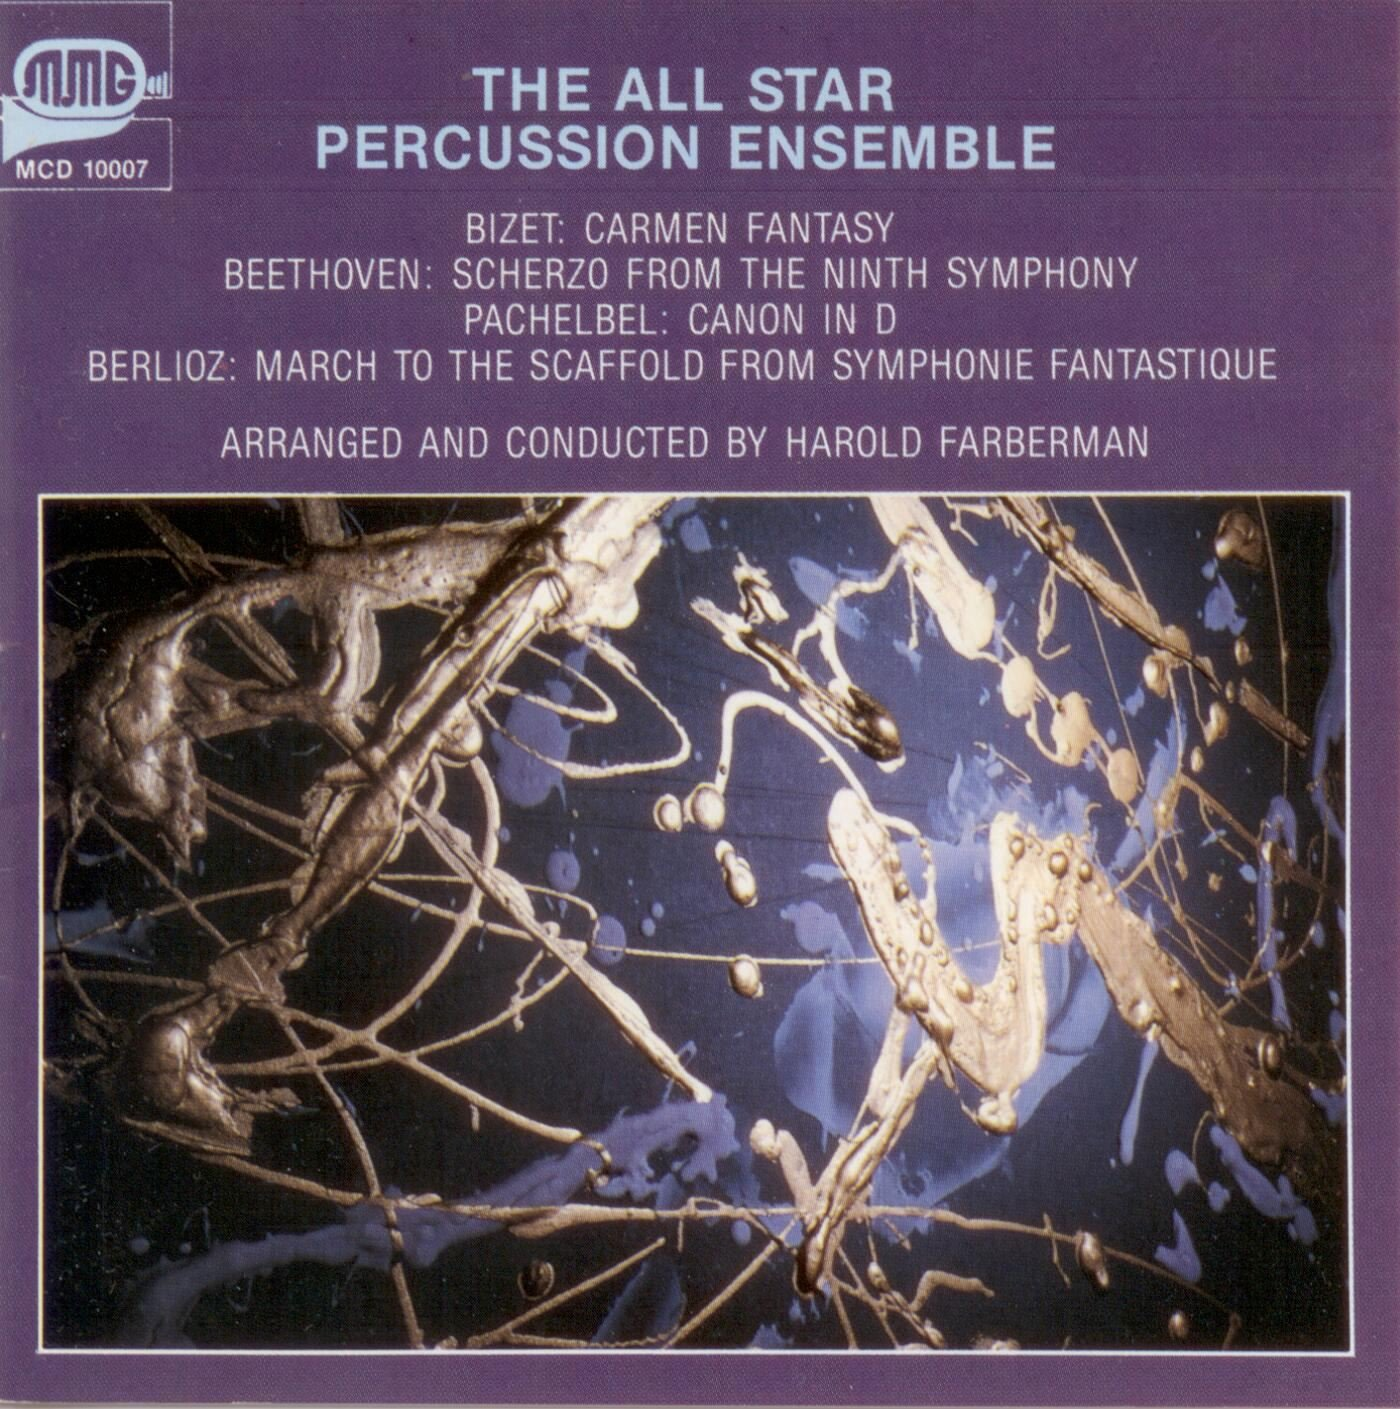 The All-Star Percussion Ensemble: Bizet: Carmen Fantasy / Beethoven: Scherzo from the Ninth Symphony / Pachelbel: Canon / Berlioz: March to the Scaffold from Symphonie Fantastique (arr. Farberman)